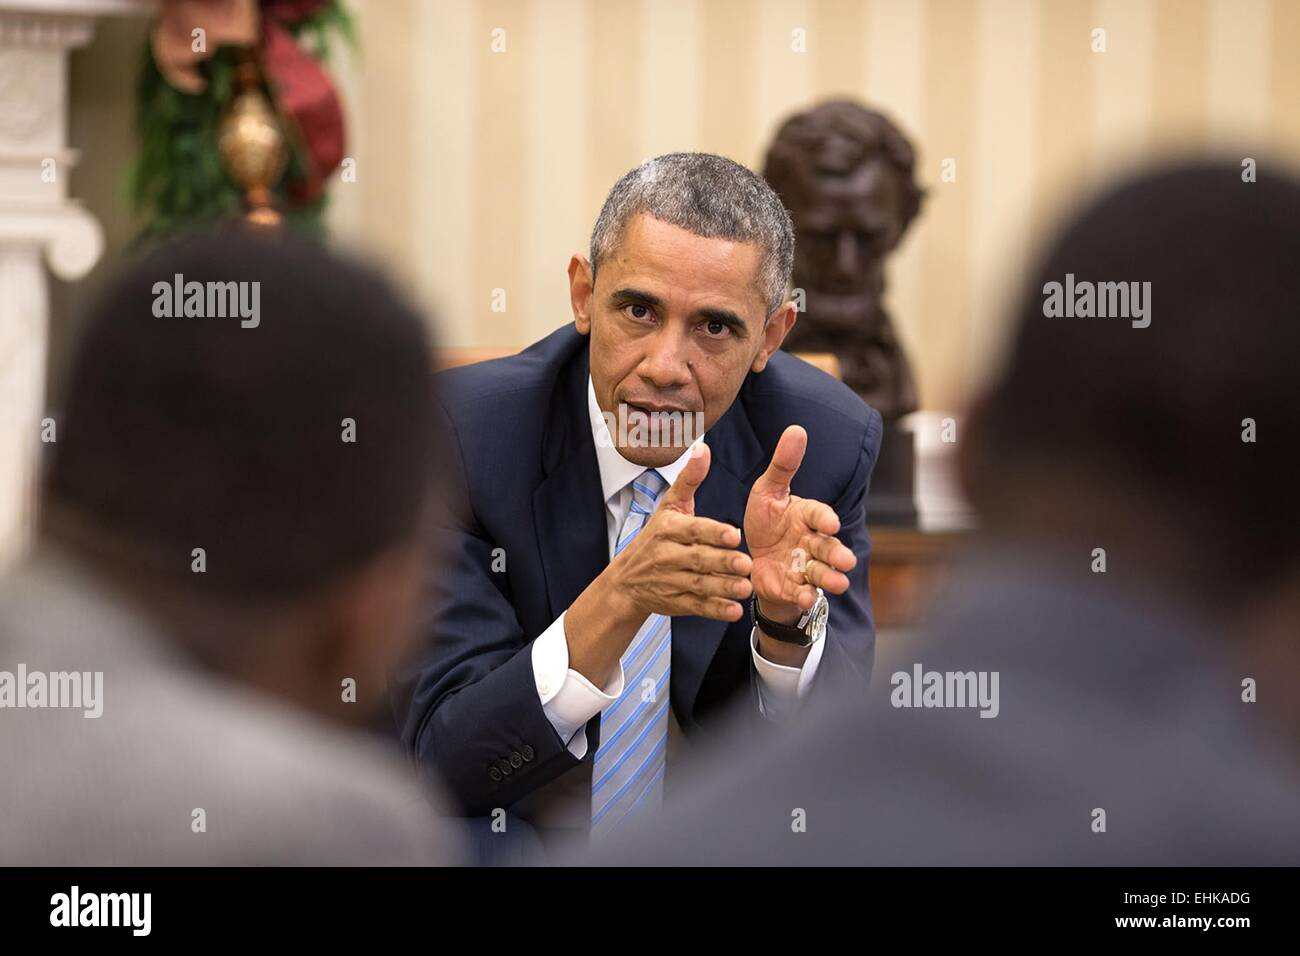 US President Barack Obama meets with young local and national civil rights leaders in the Oval Office of the White - Stock Image